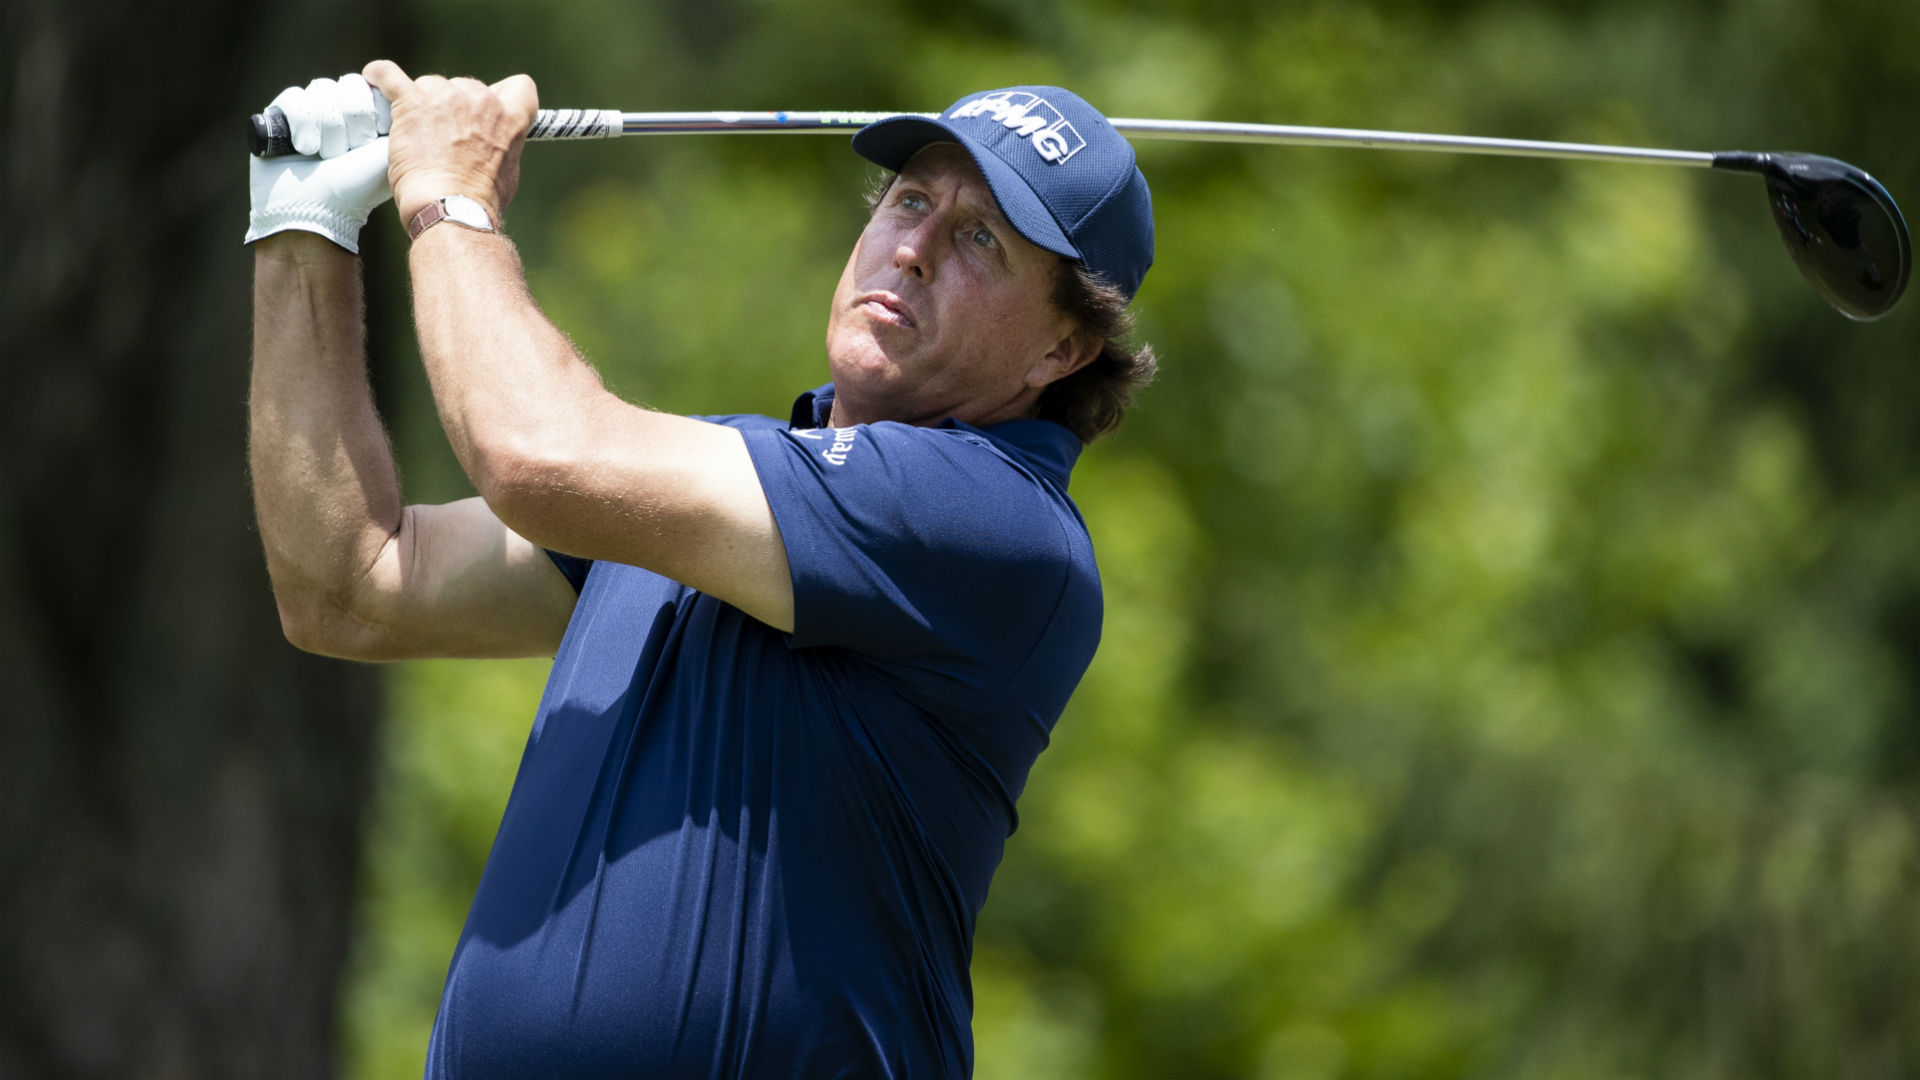 WATCH: Phil Mickelson picks up another bizarre penalty